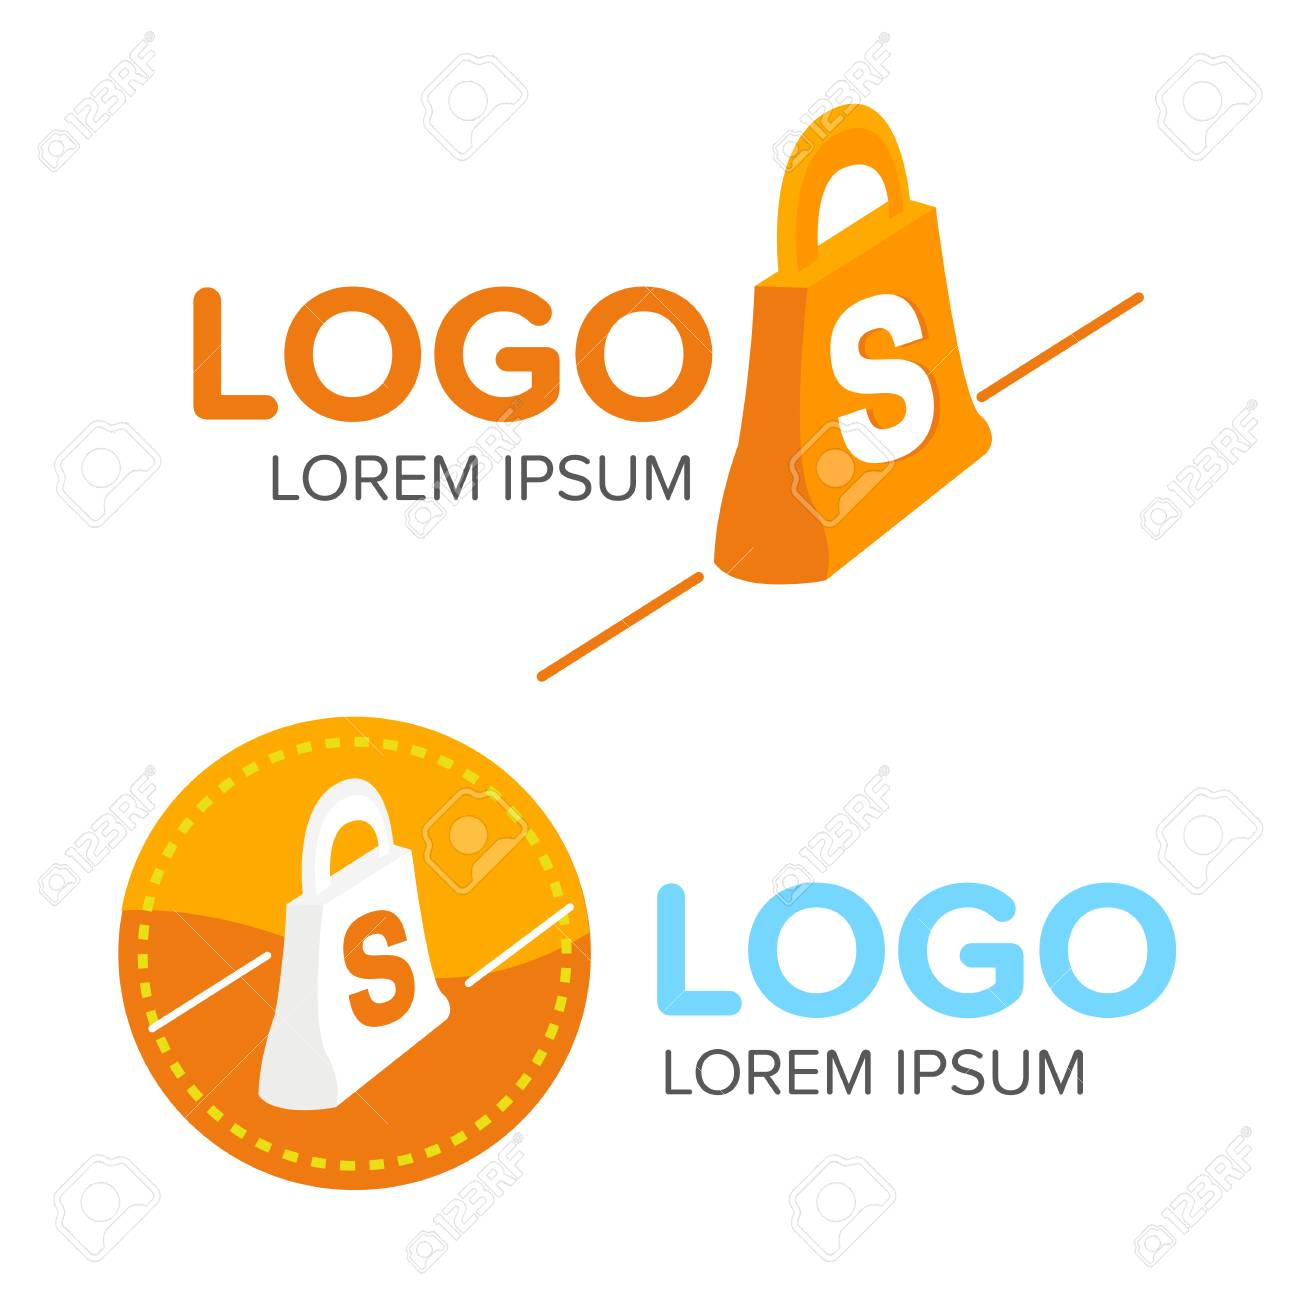 Business Icon Shopping Bag Logo Design Template Colorful With Line And Text Vector Illustrator